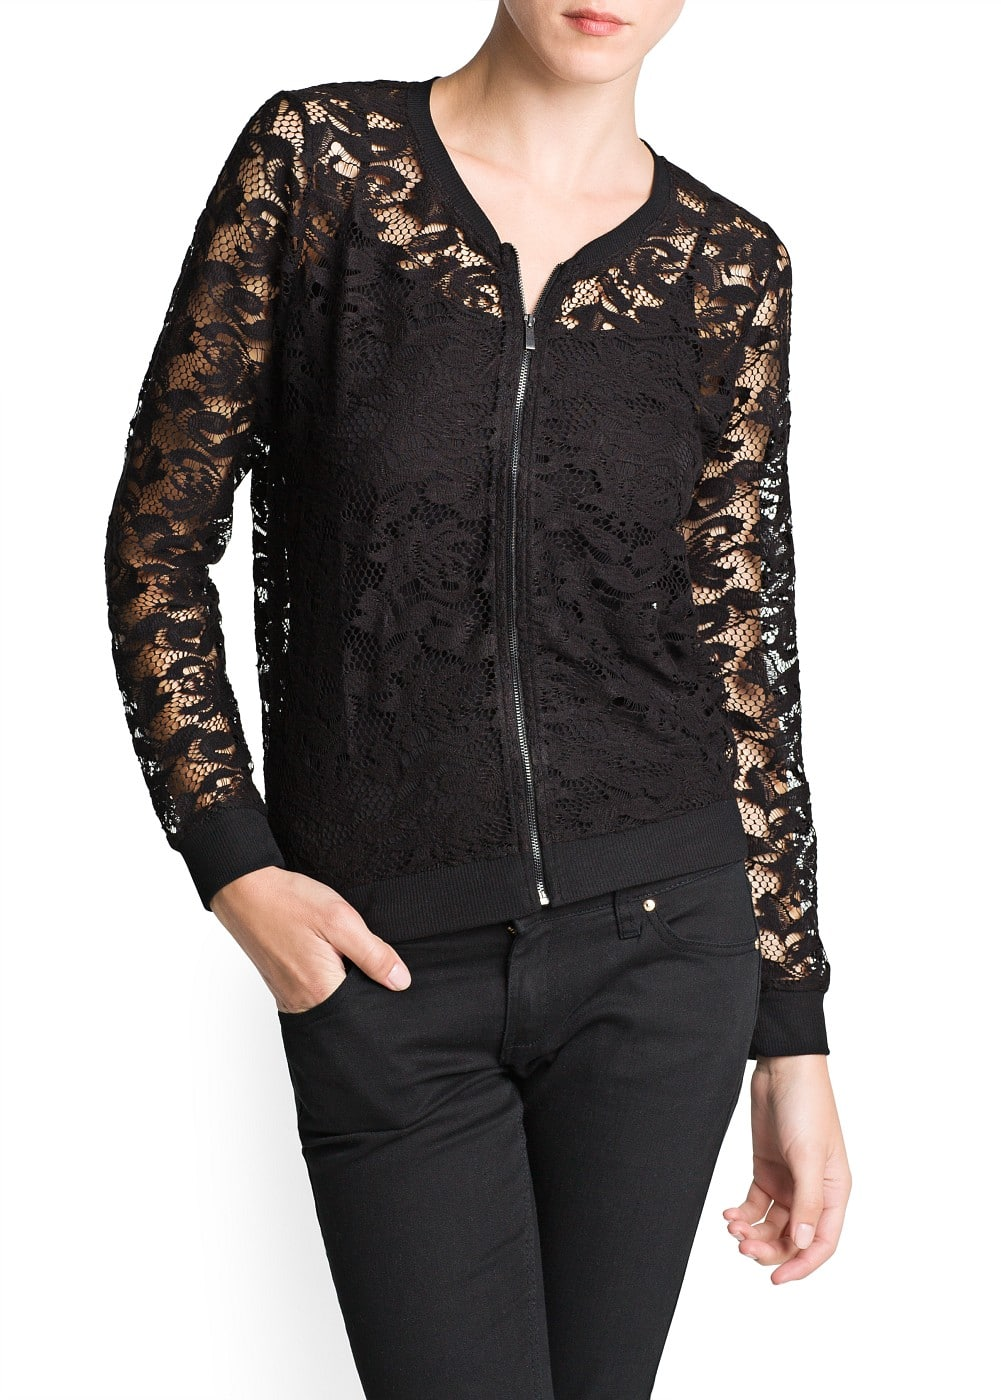 Zipped lace jacket